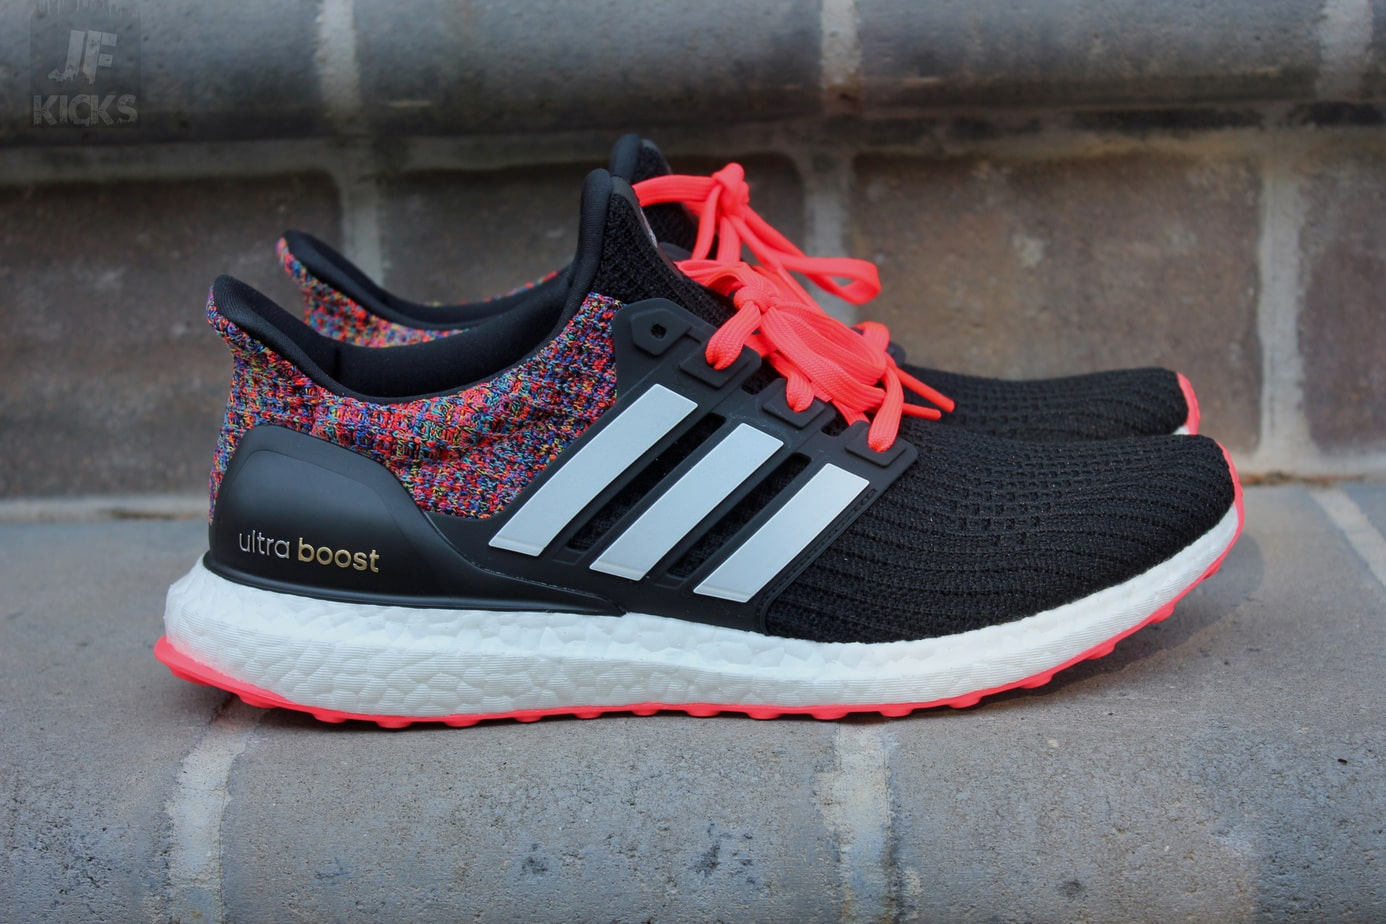 e7362620b ... Ultra Boost won t be around forever. Head over to the adidas website to  start customizing now